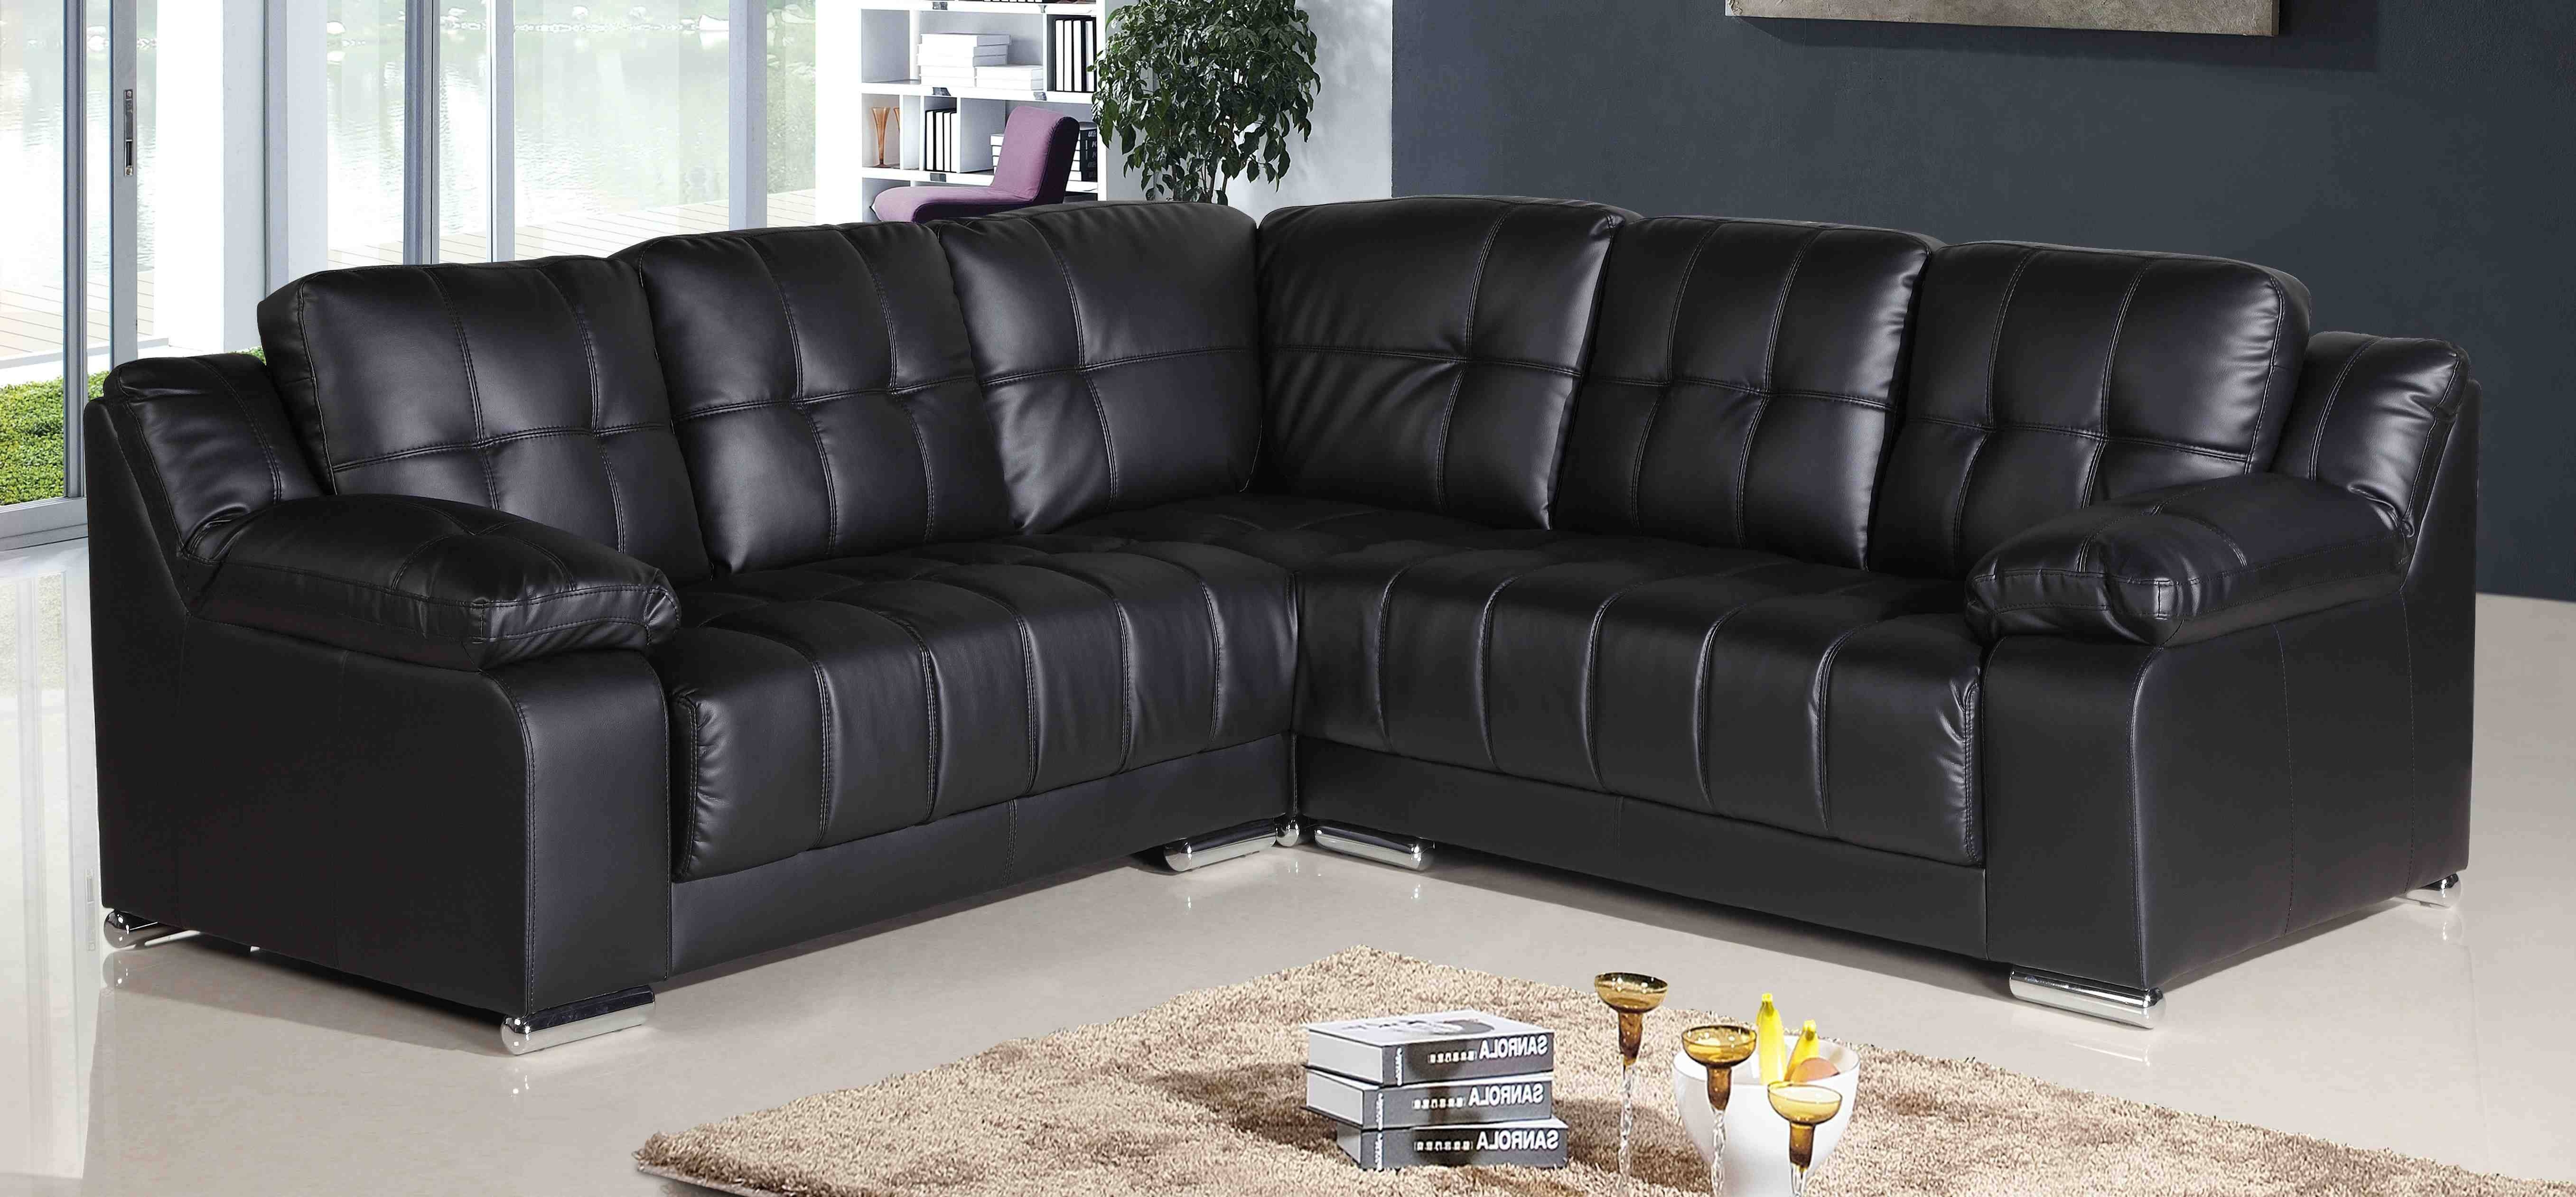 Cheap Leather Sofas Glasgow. Get Quotations White Leather Couch intended for 2X2 Corner Sofas (Image 2 of 30)